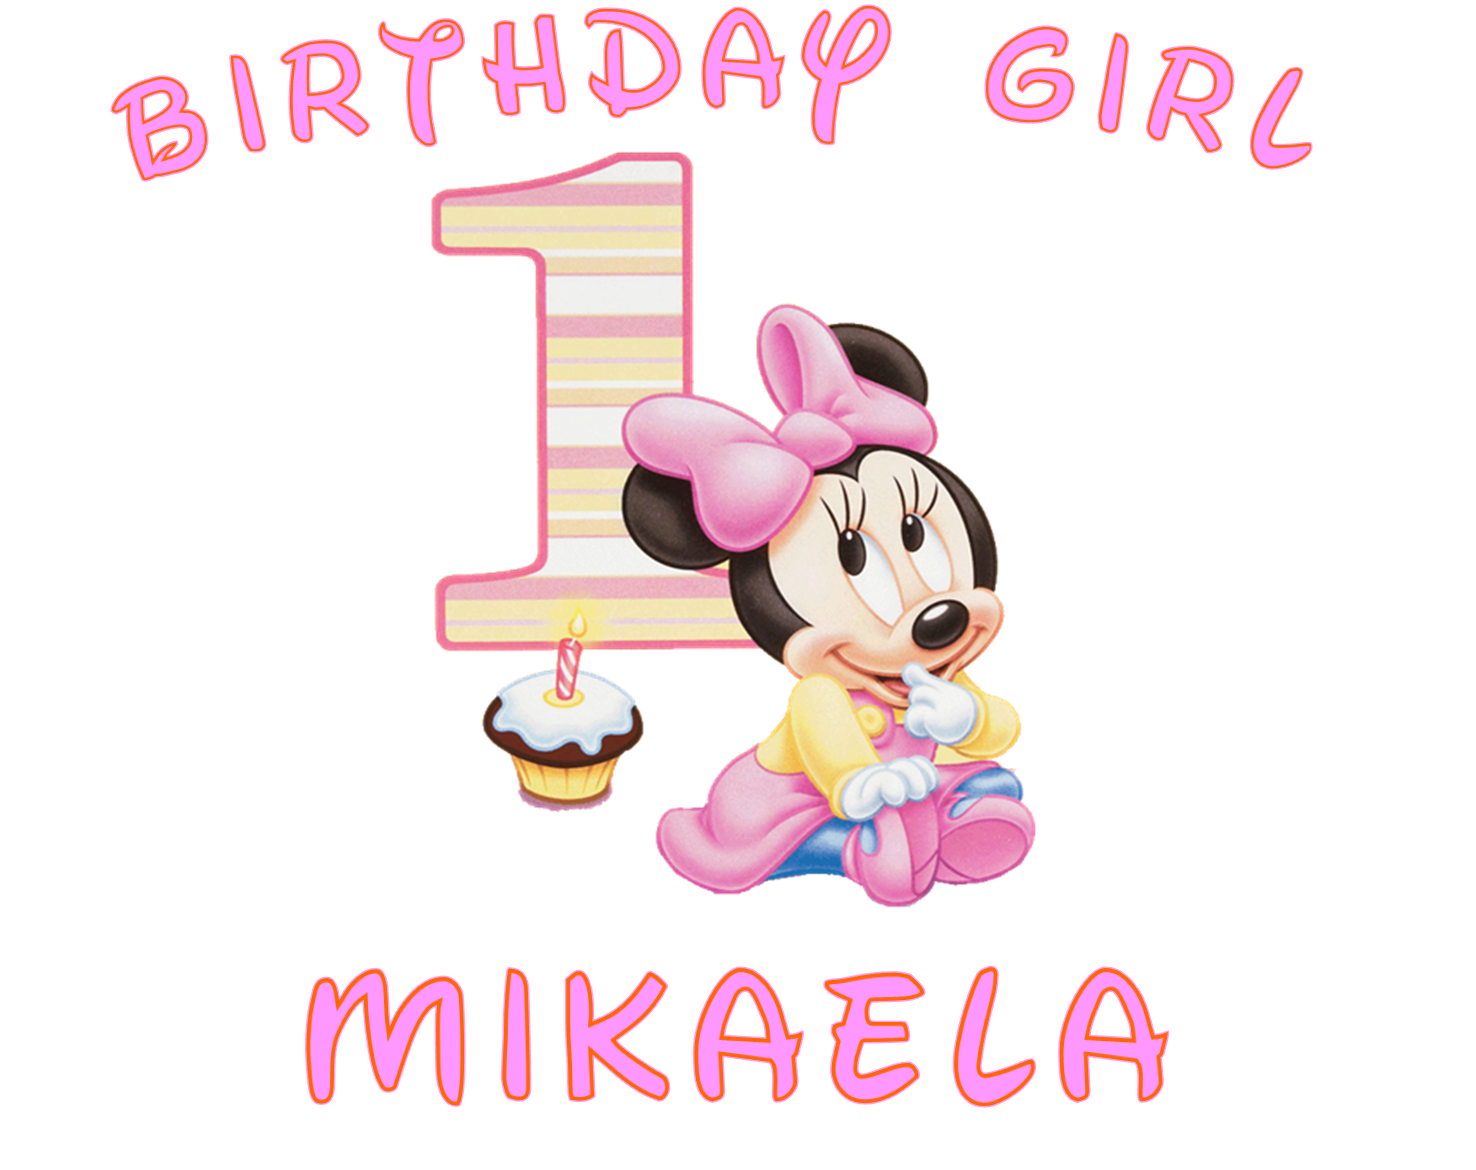 Minnie mouse 1st birthday png. Collection of st